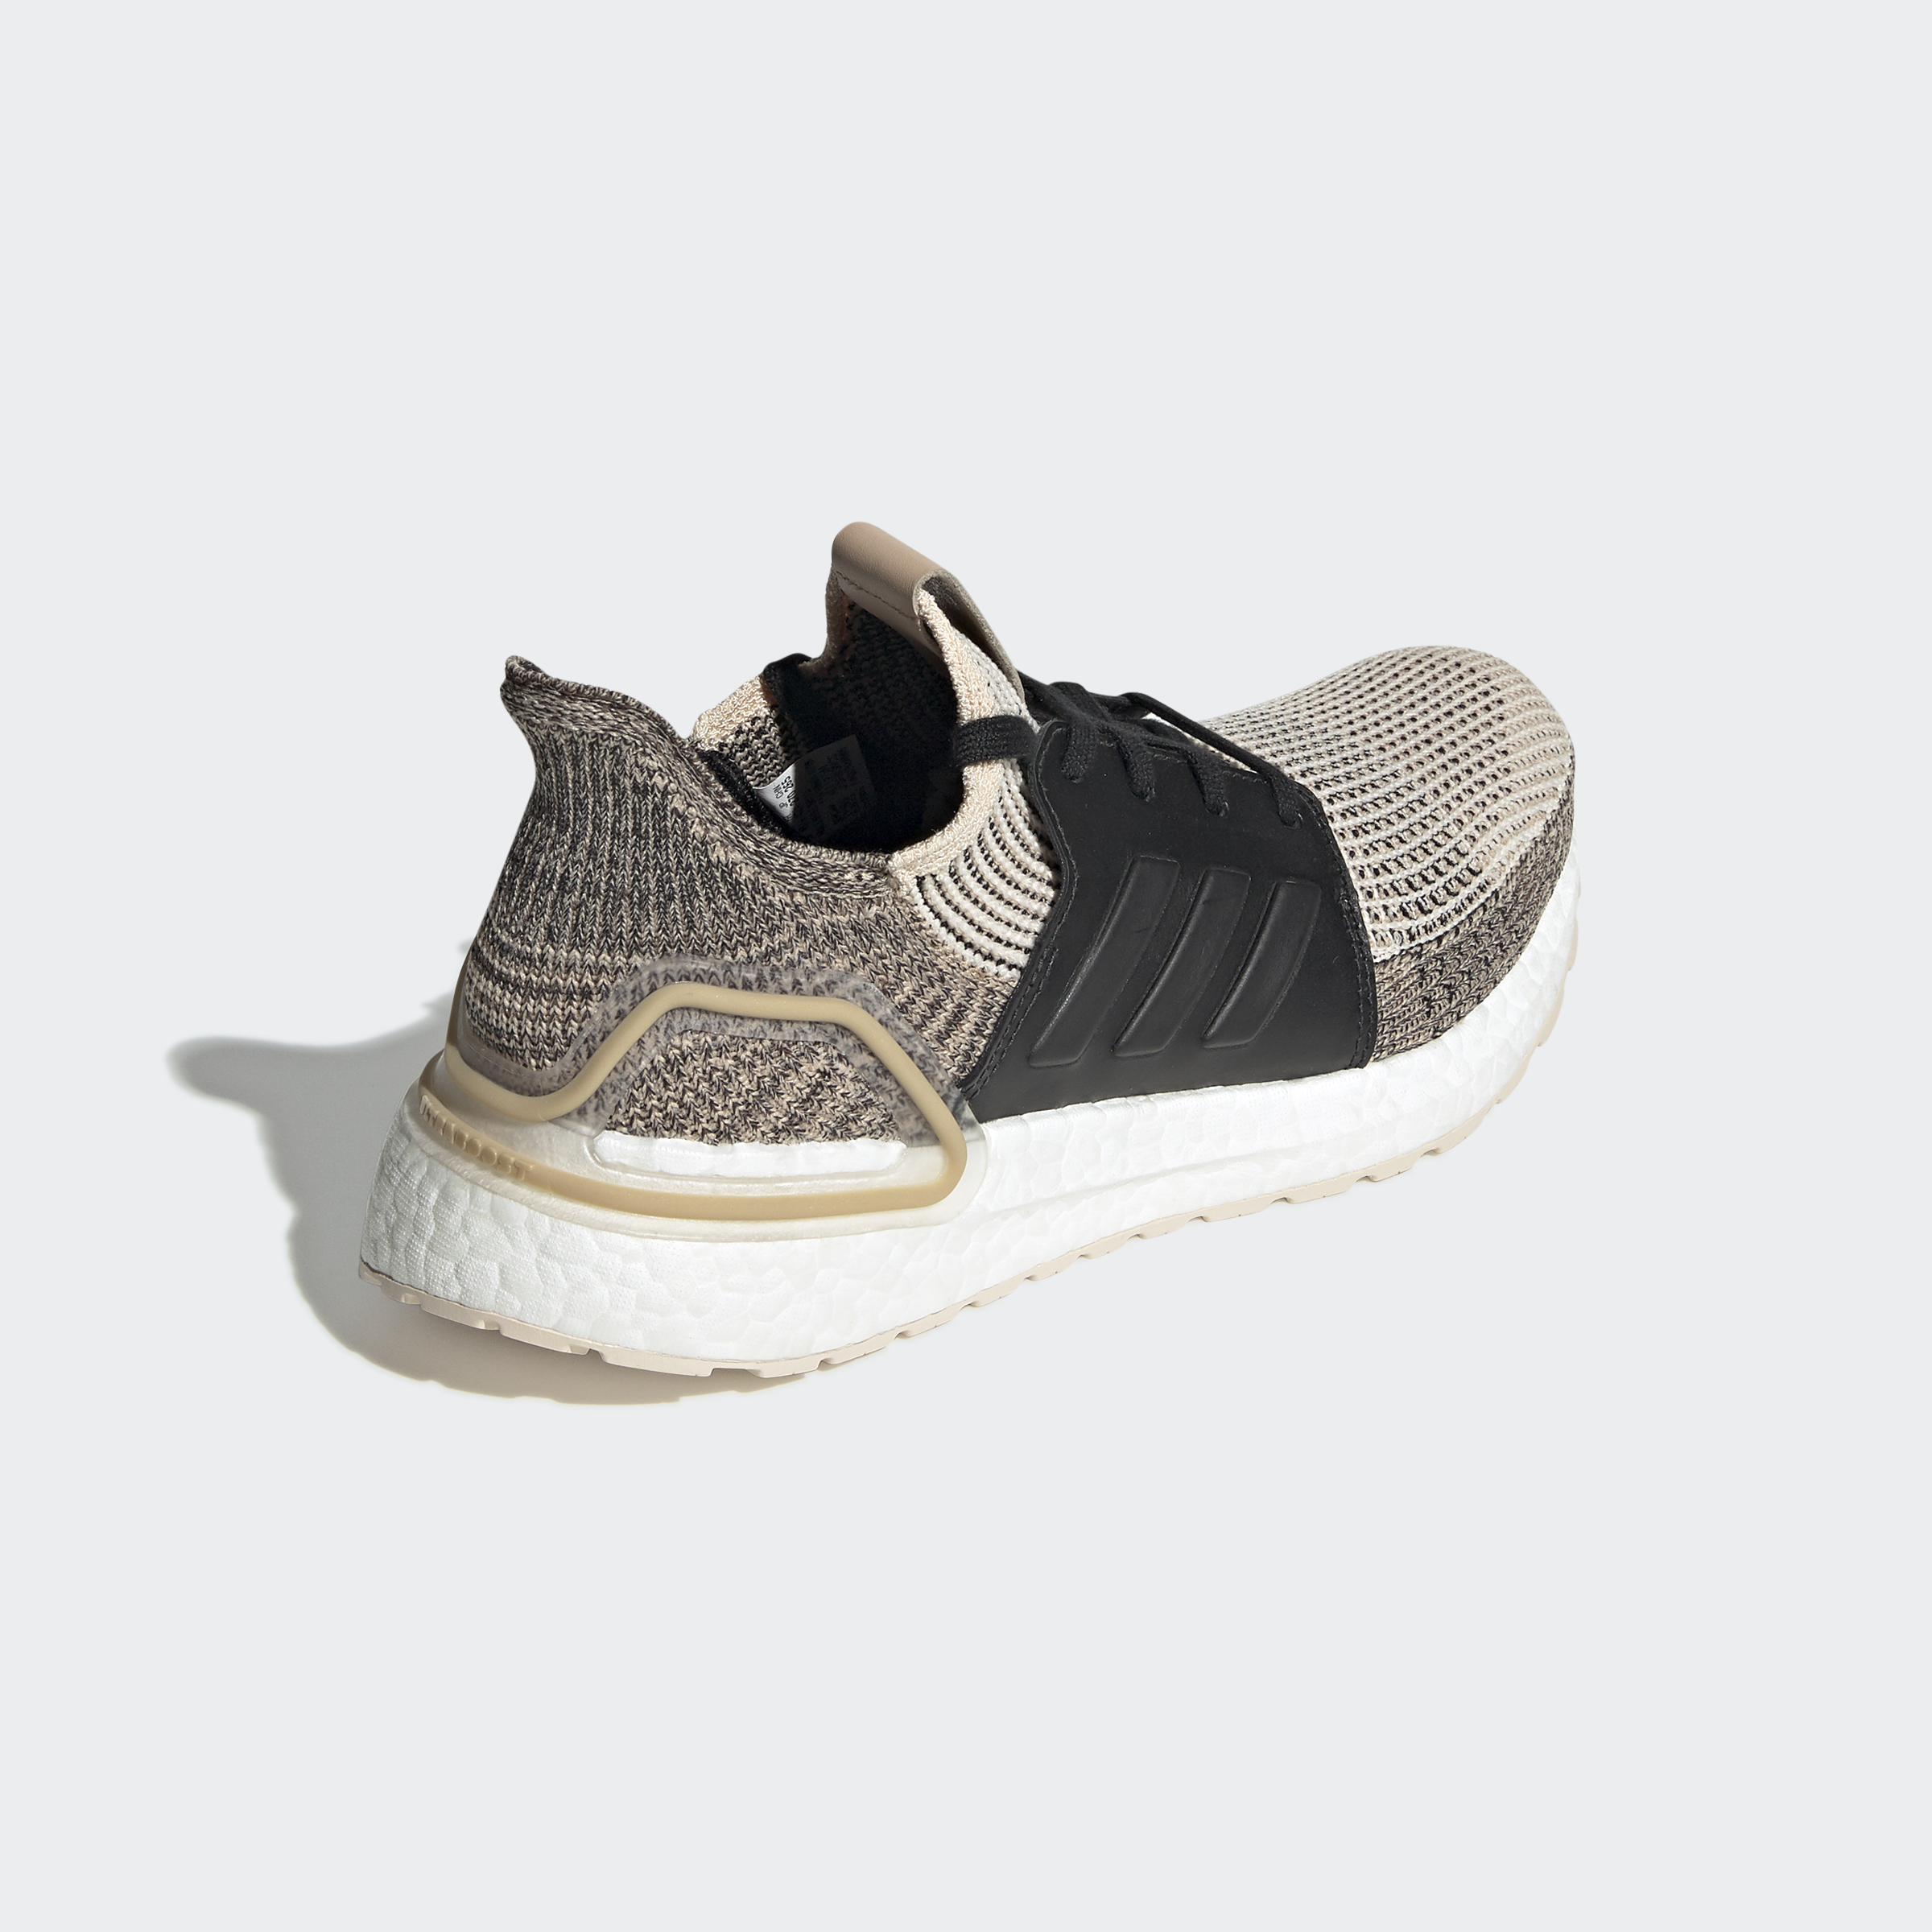 adidas-Ultraboost-19-Shoes-Athletic-amp-Sneakers thumbnail 70